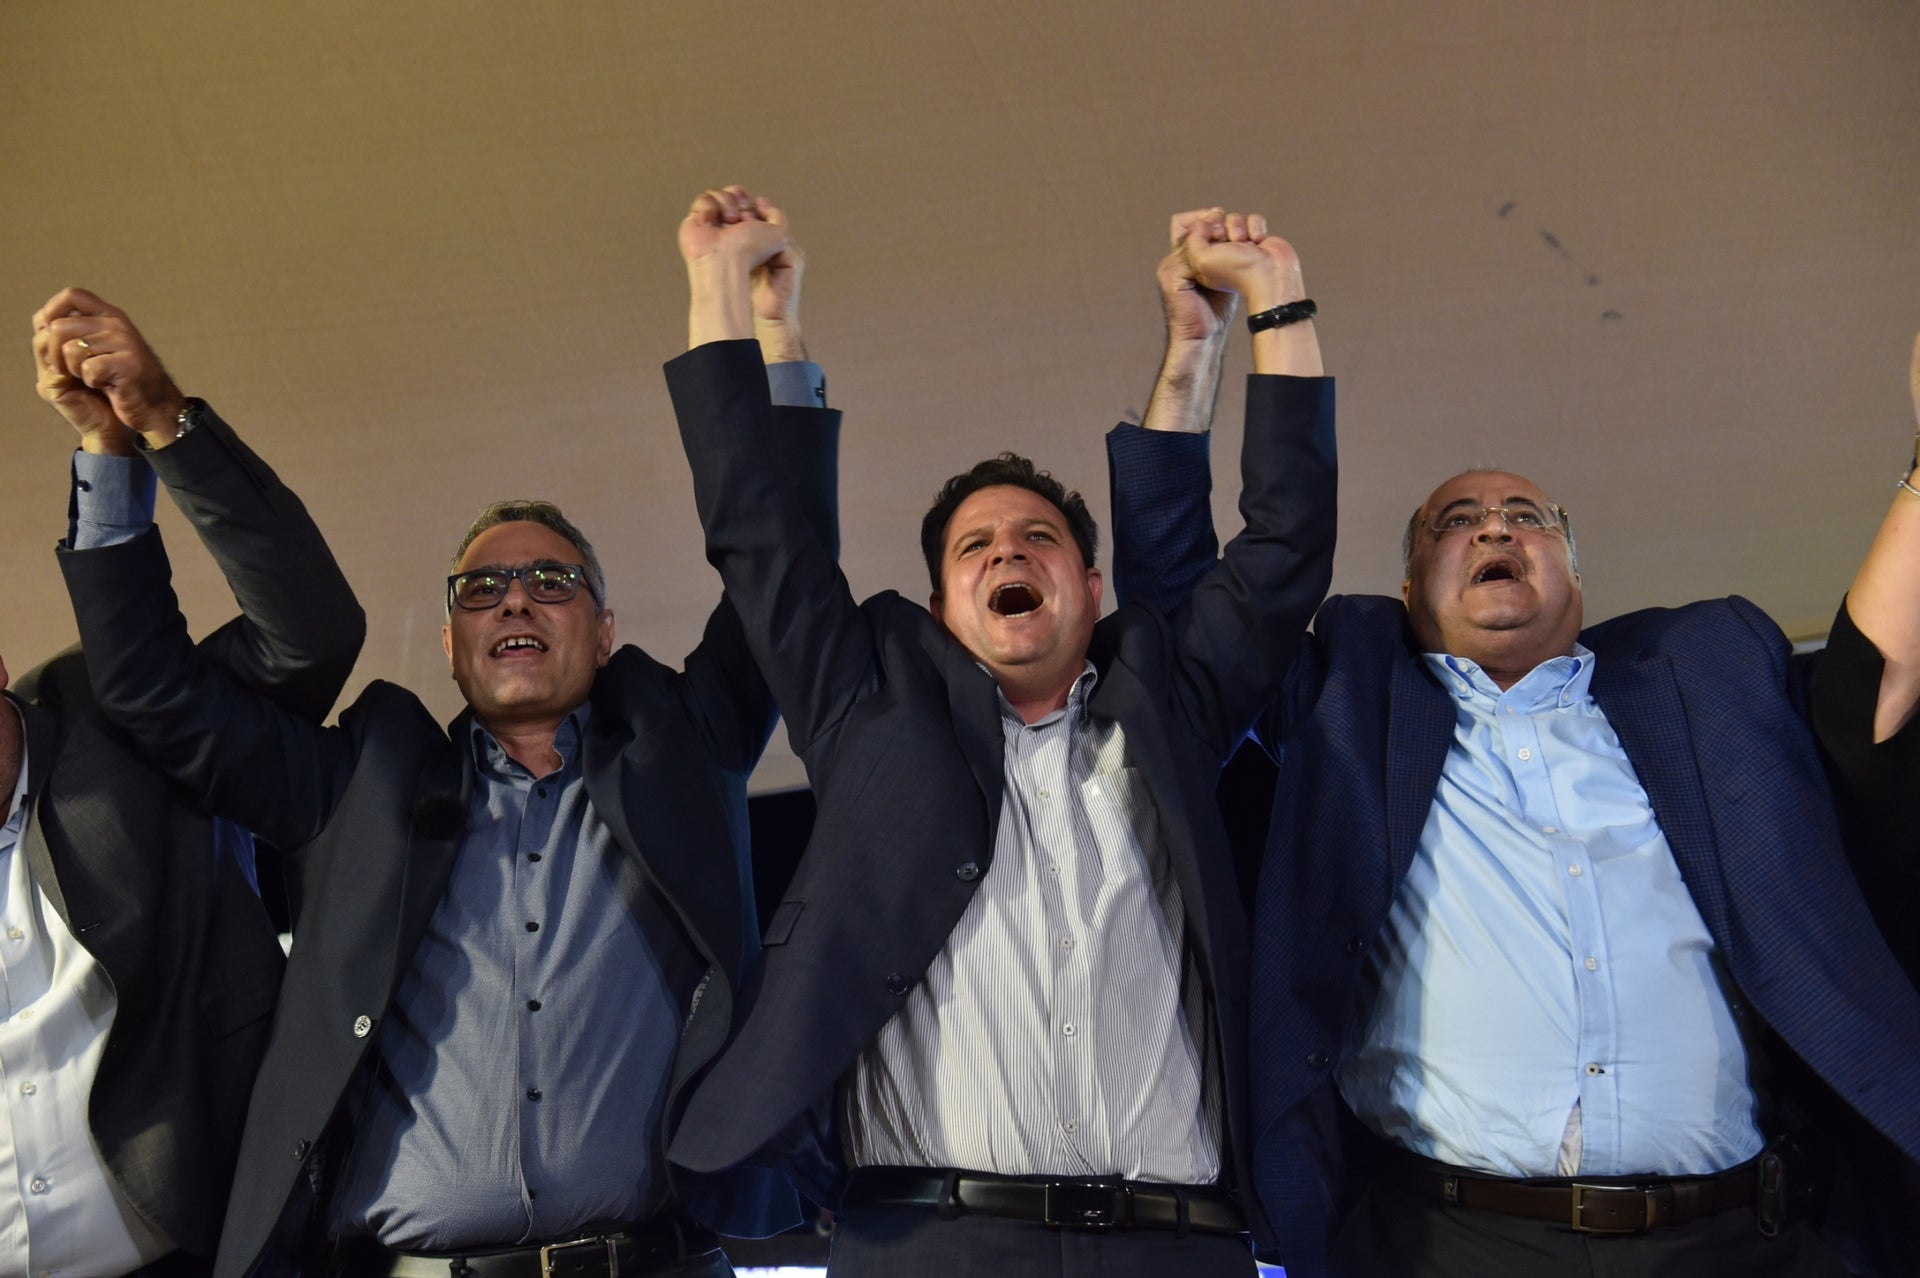 Joint List MKs Ahmad Tibi, right, and Ayman Odeh, center, after hearing the initial election results, Sept. 17, 201